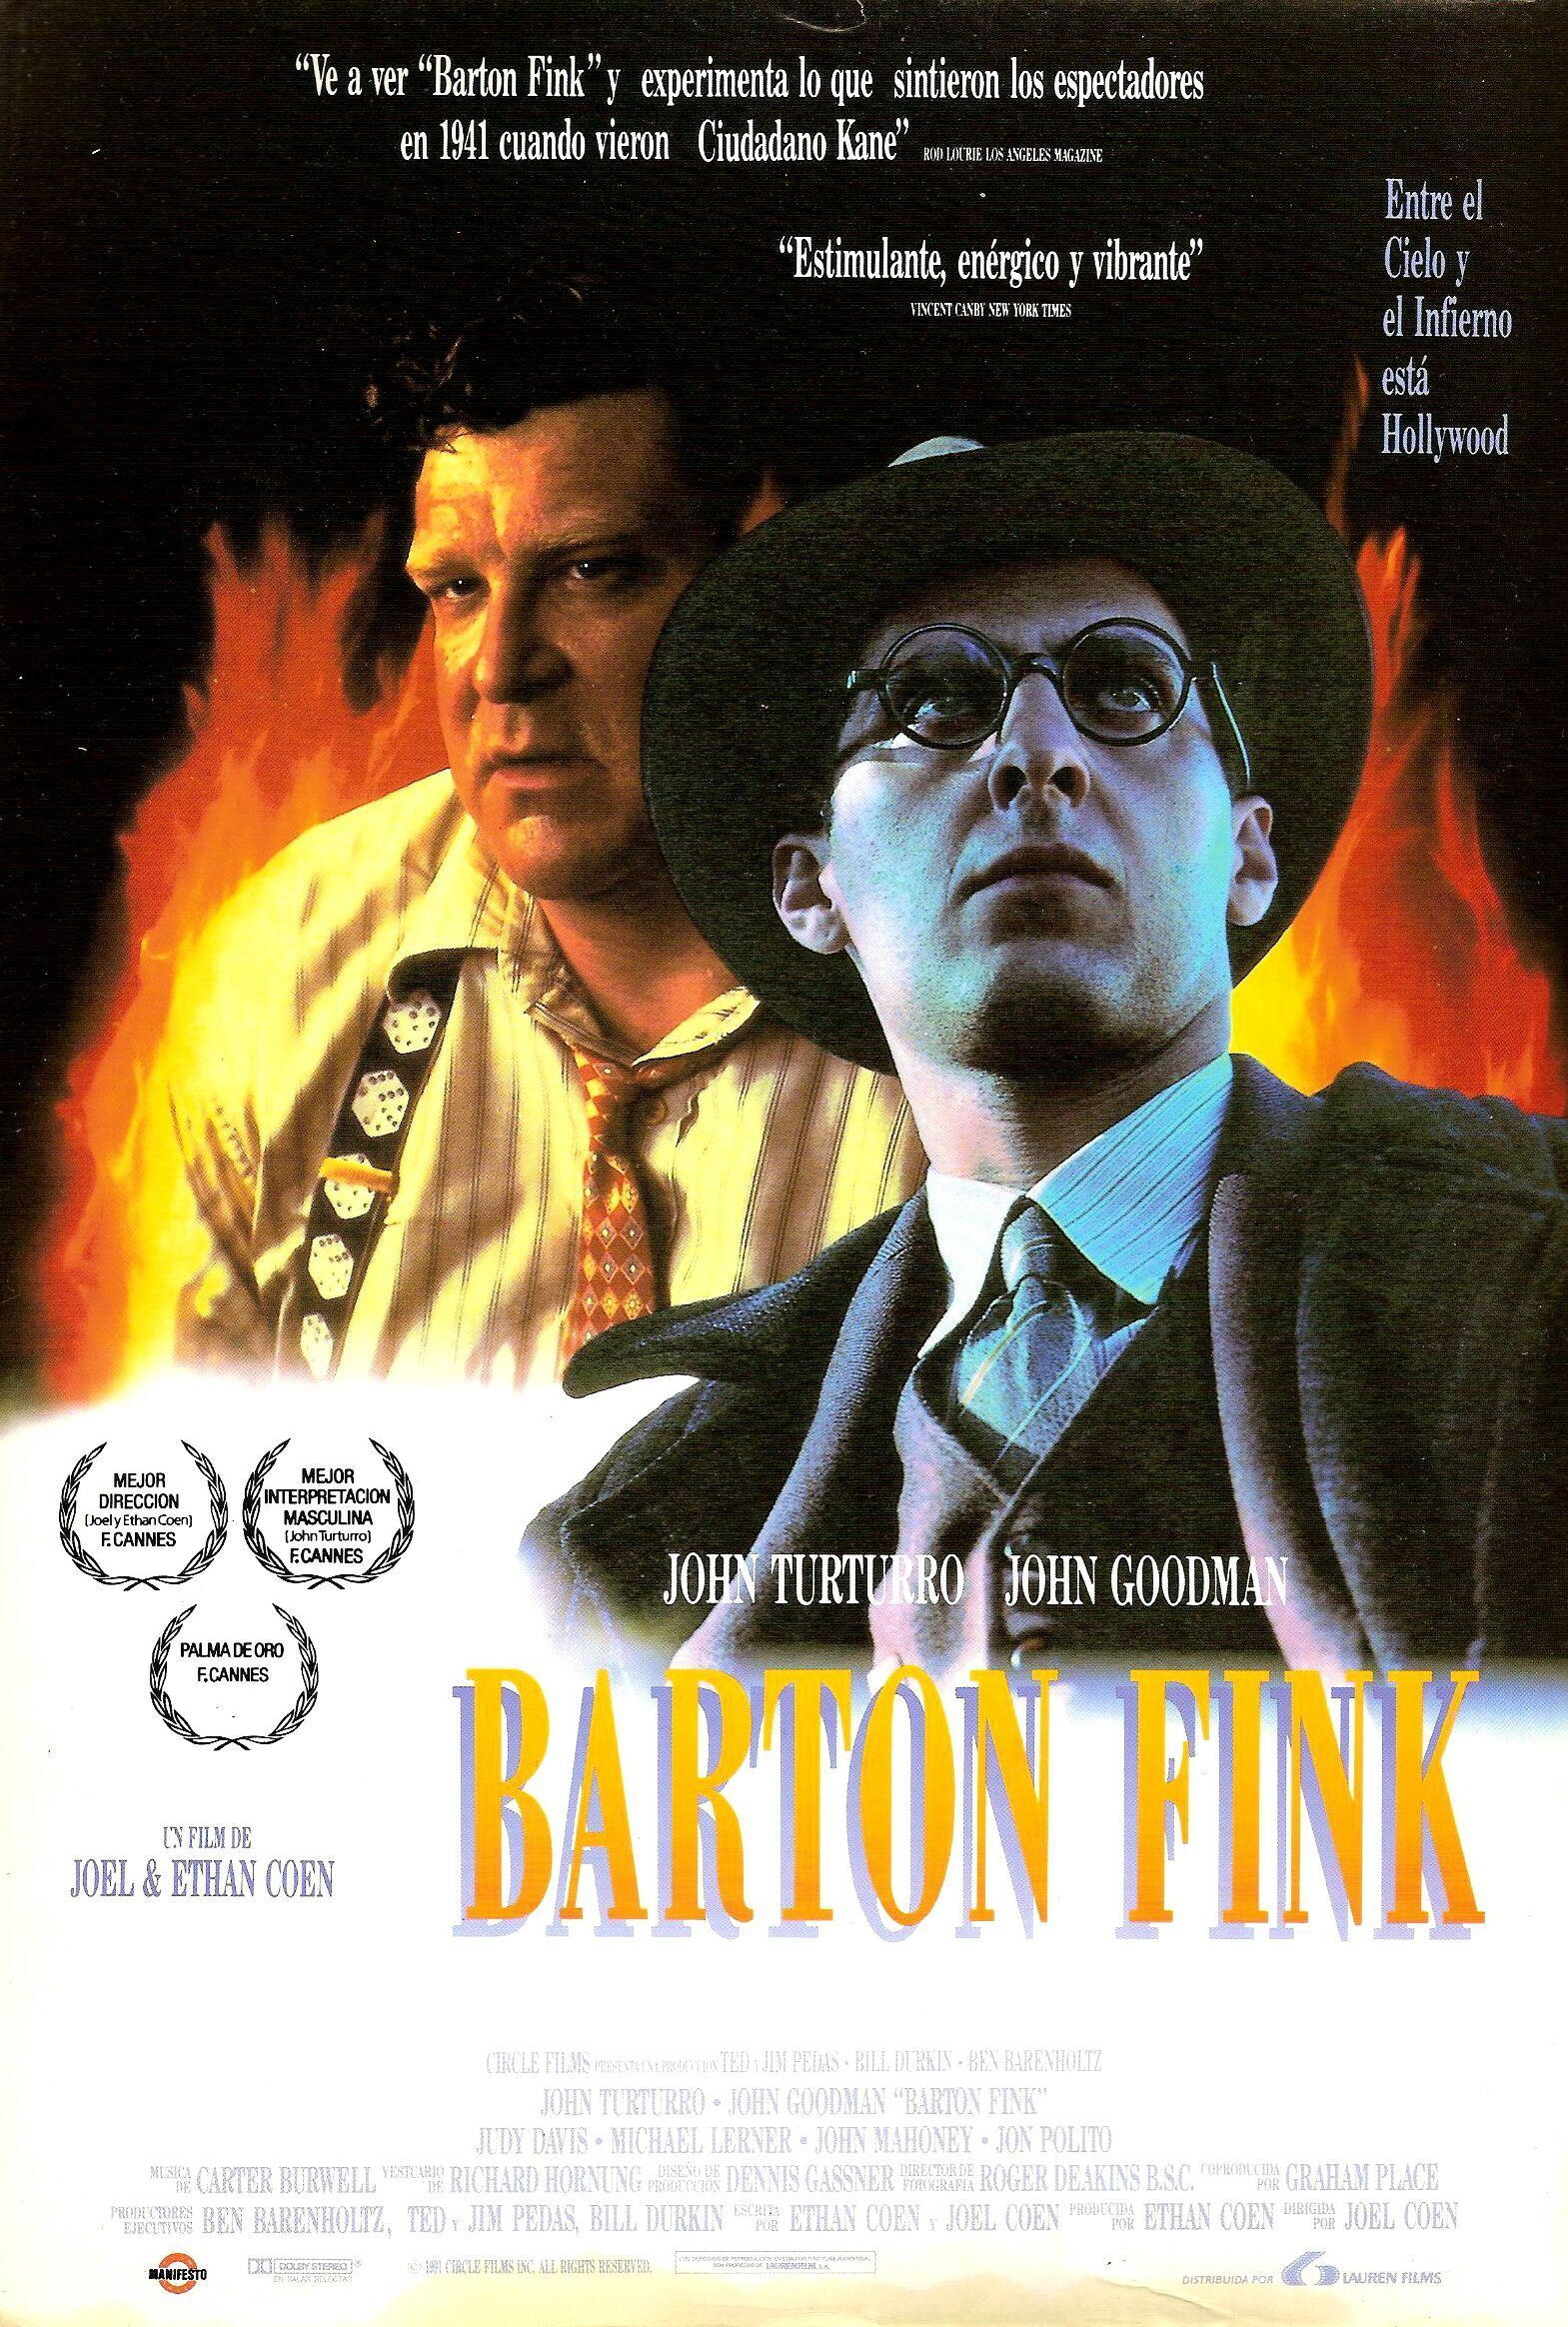 Barton Fink DVD Cover, DVD Label, Blu-Ray Cover, Blu-Ray